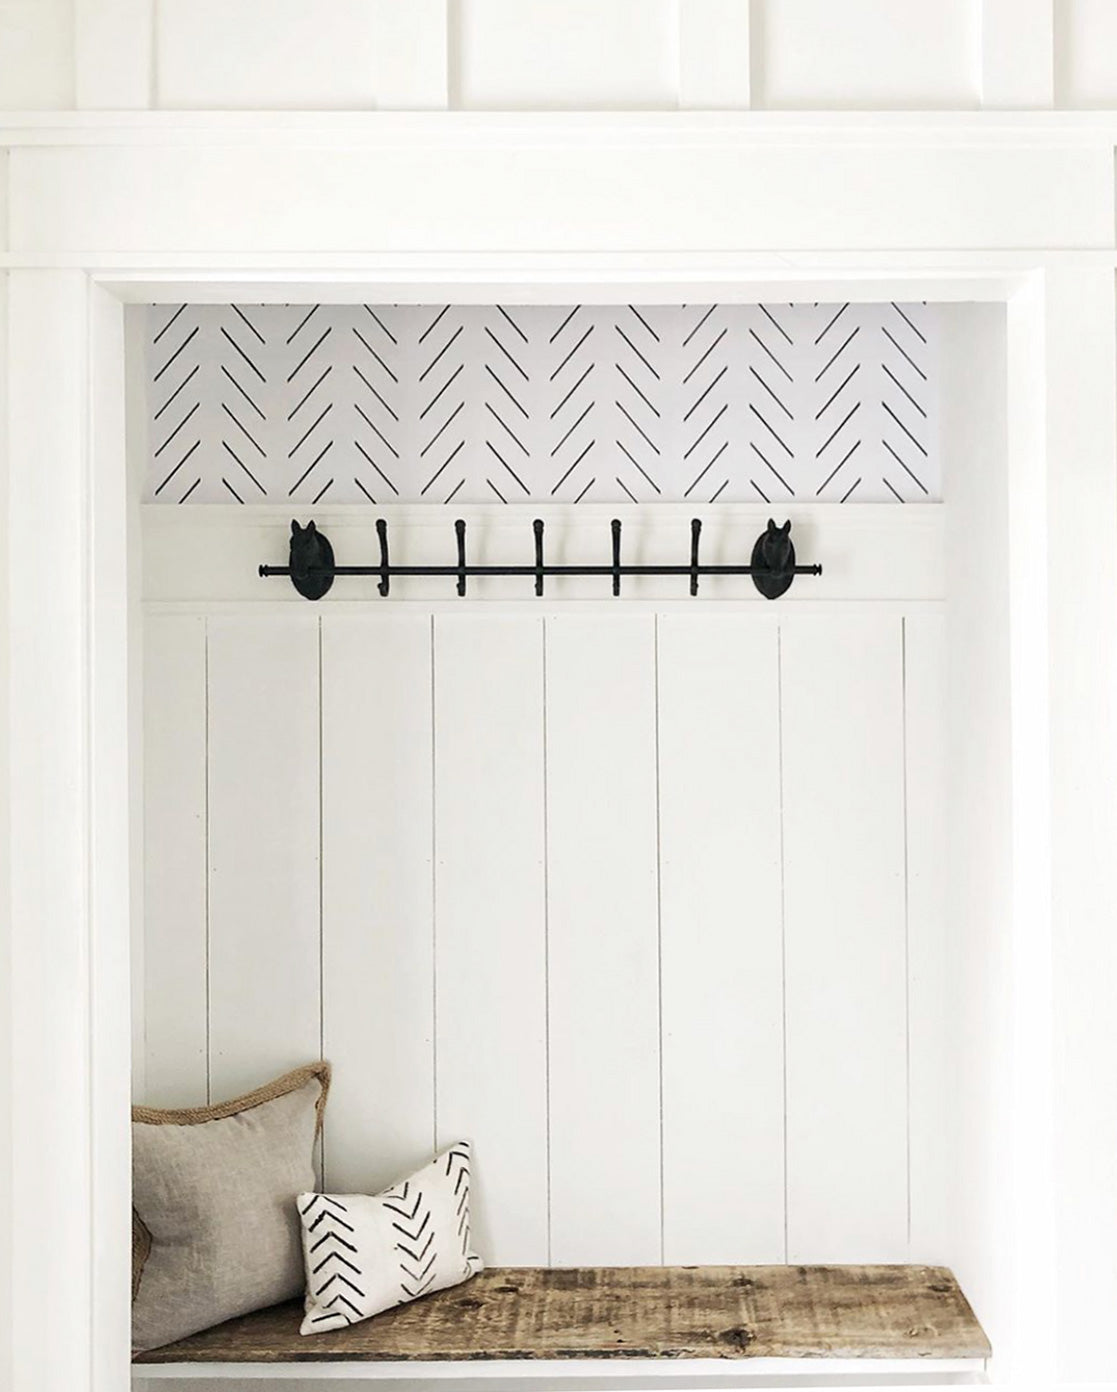 DIY wallpaper project for wallpapered closet nook